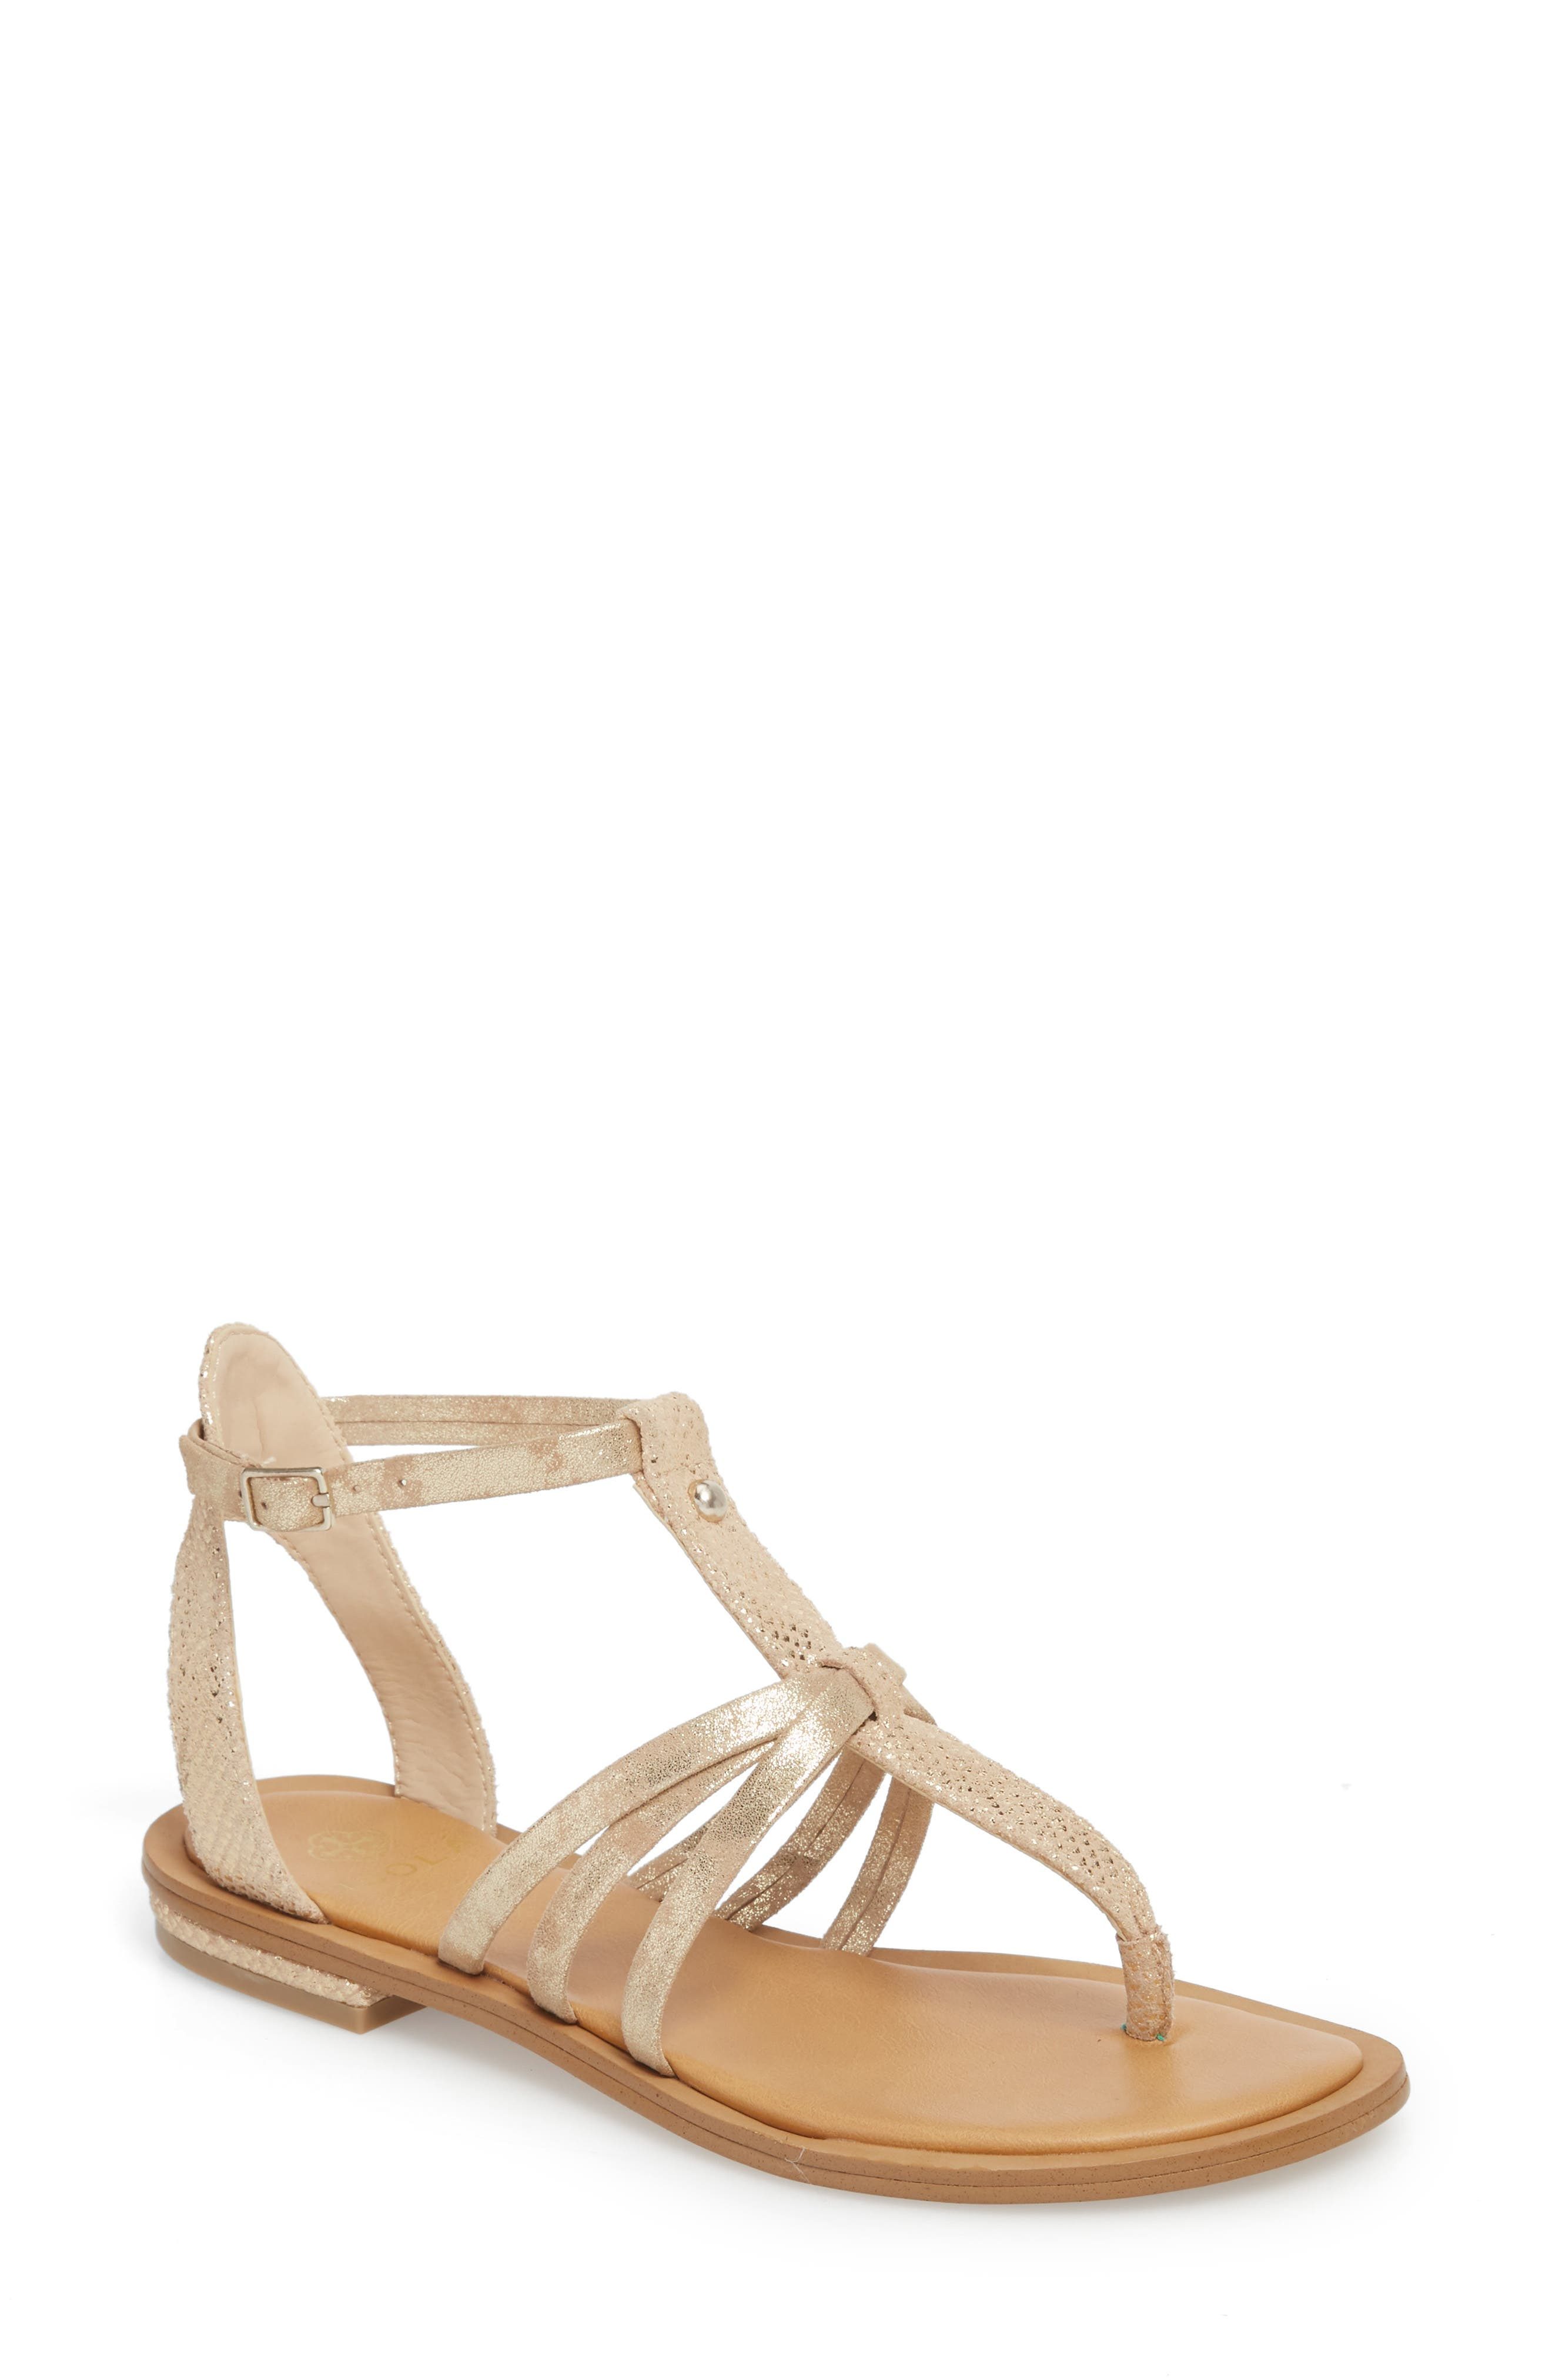 Marica Sandal,                         Main,                         color, Gold Suede